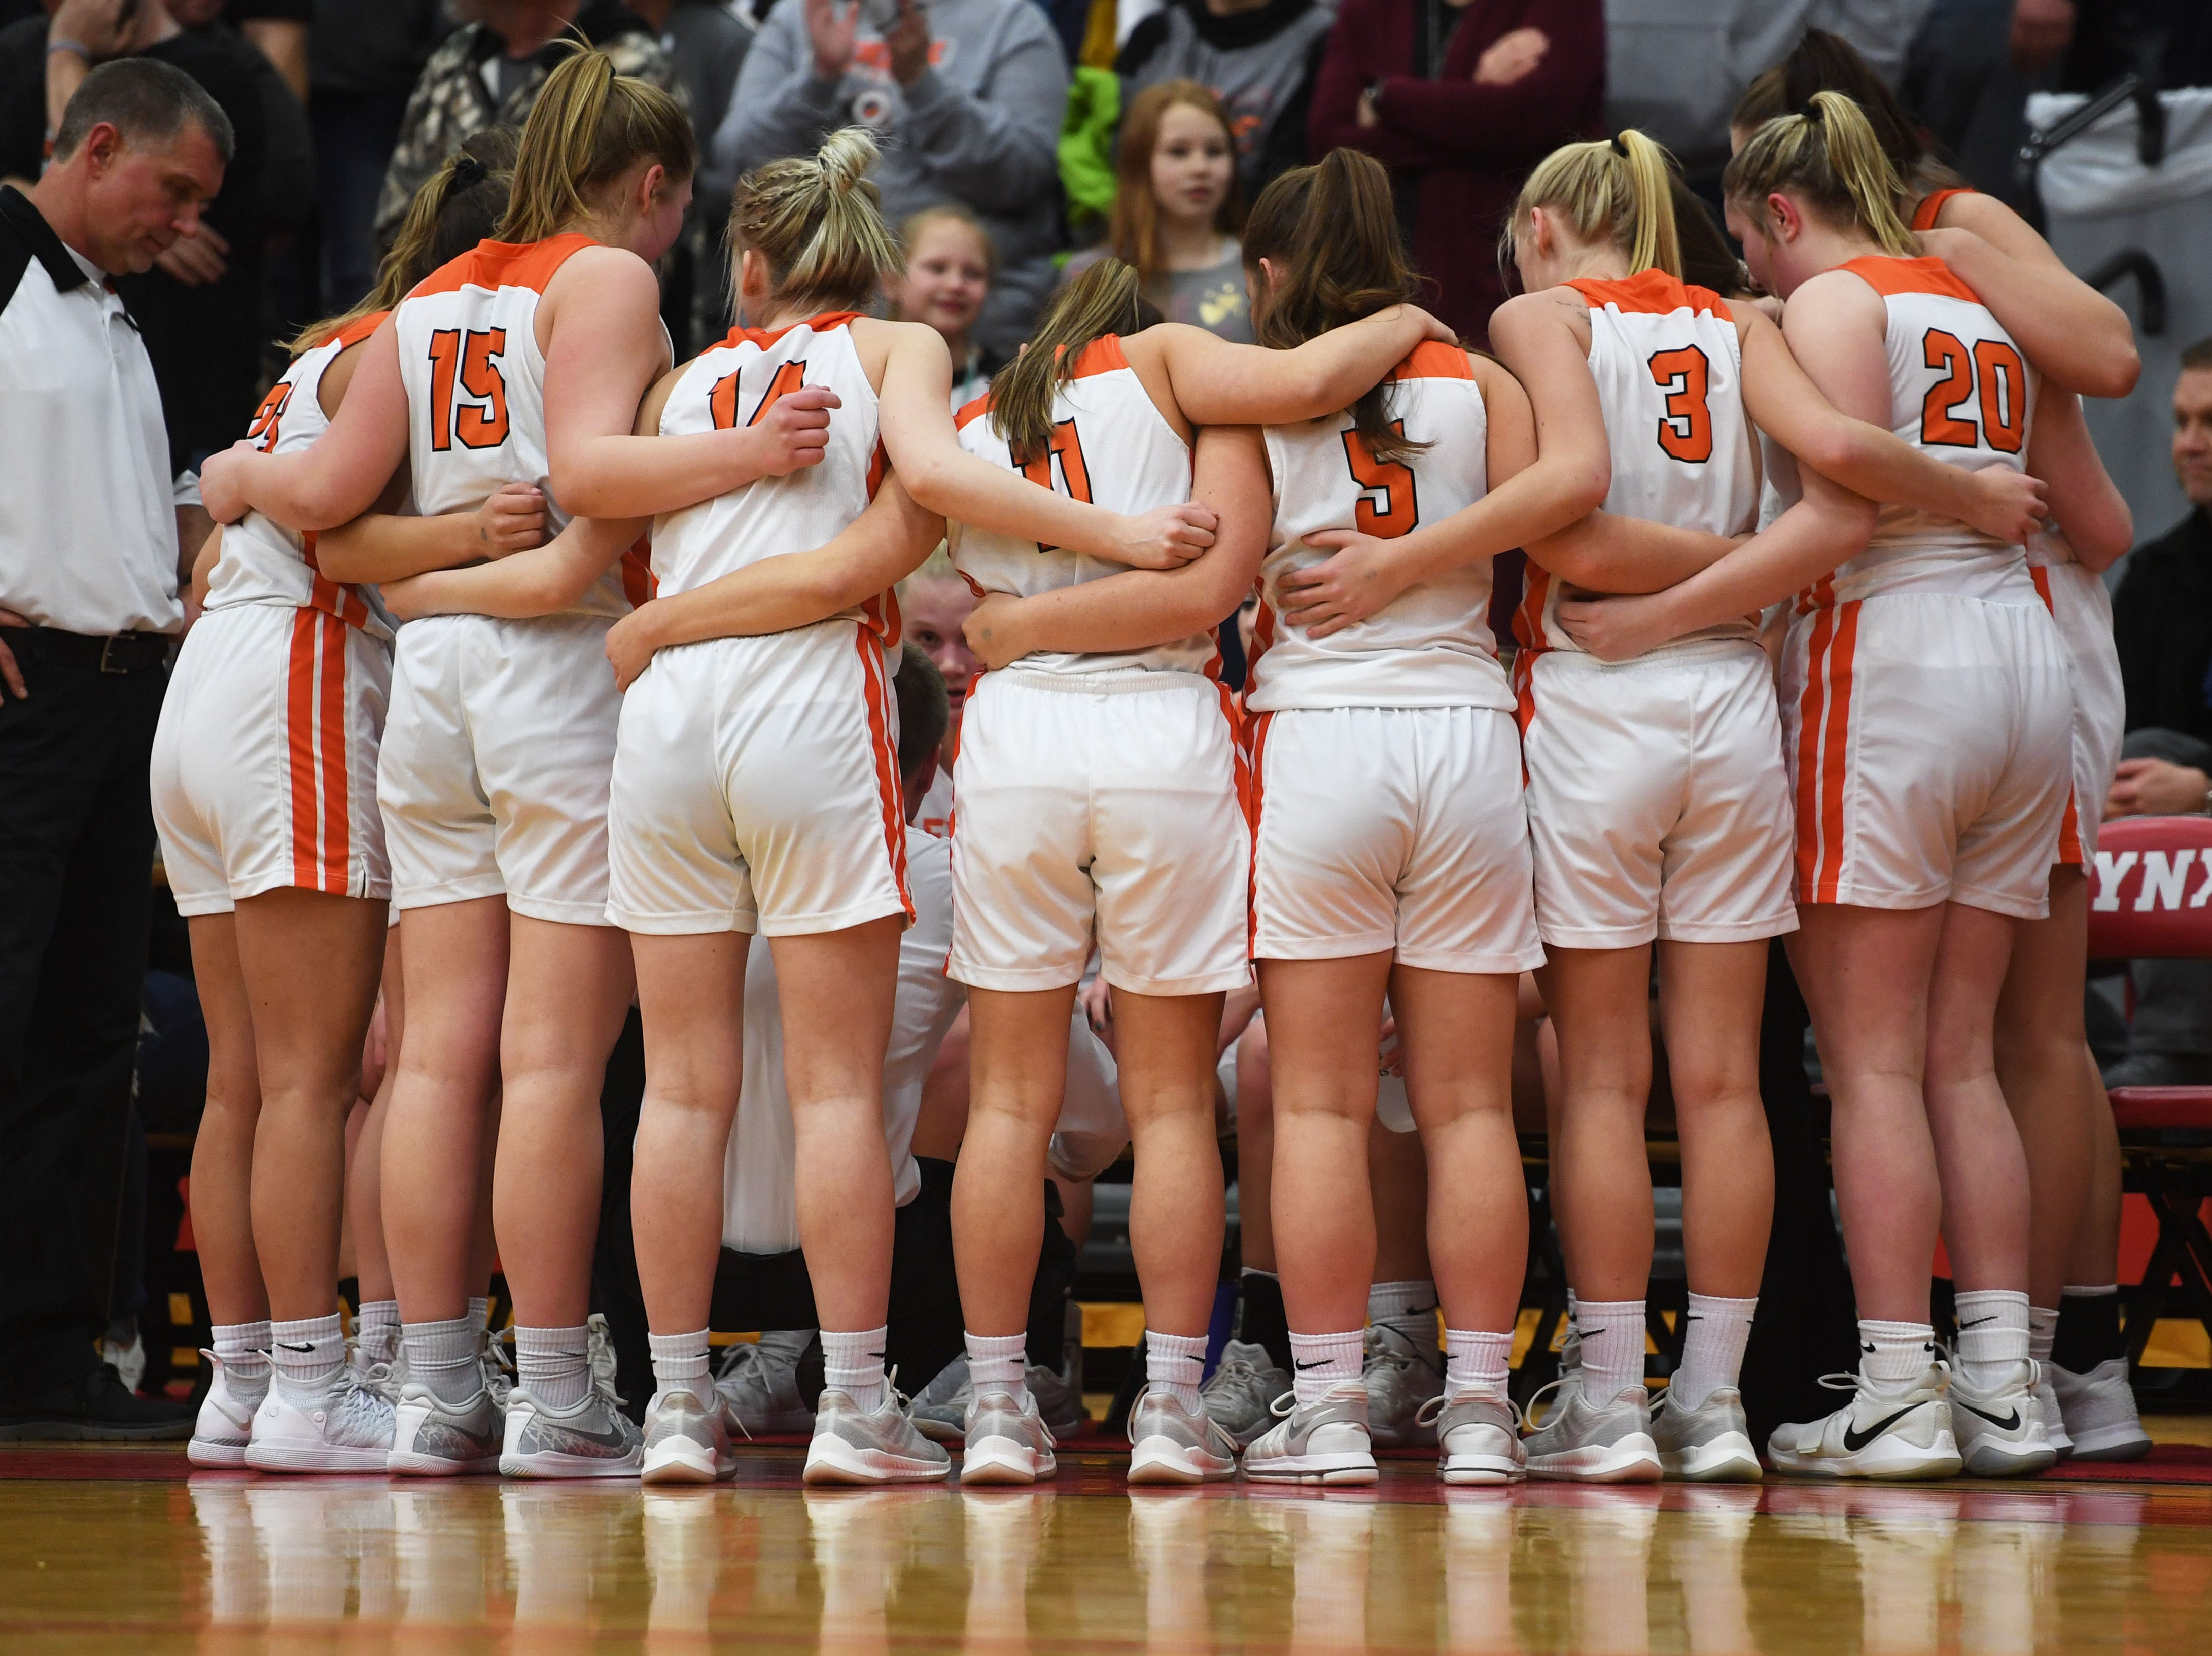 Lennox goes against Sioux Falls Christian Thursday, March 7, at Brandon Valley High School in Brandon Valley.